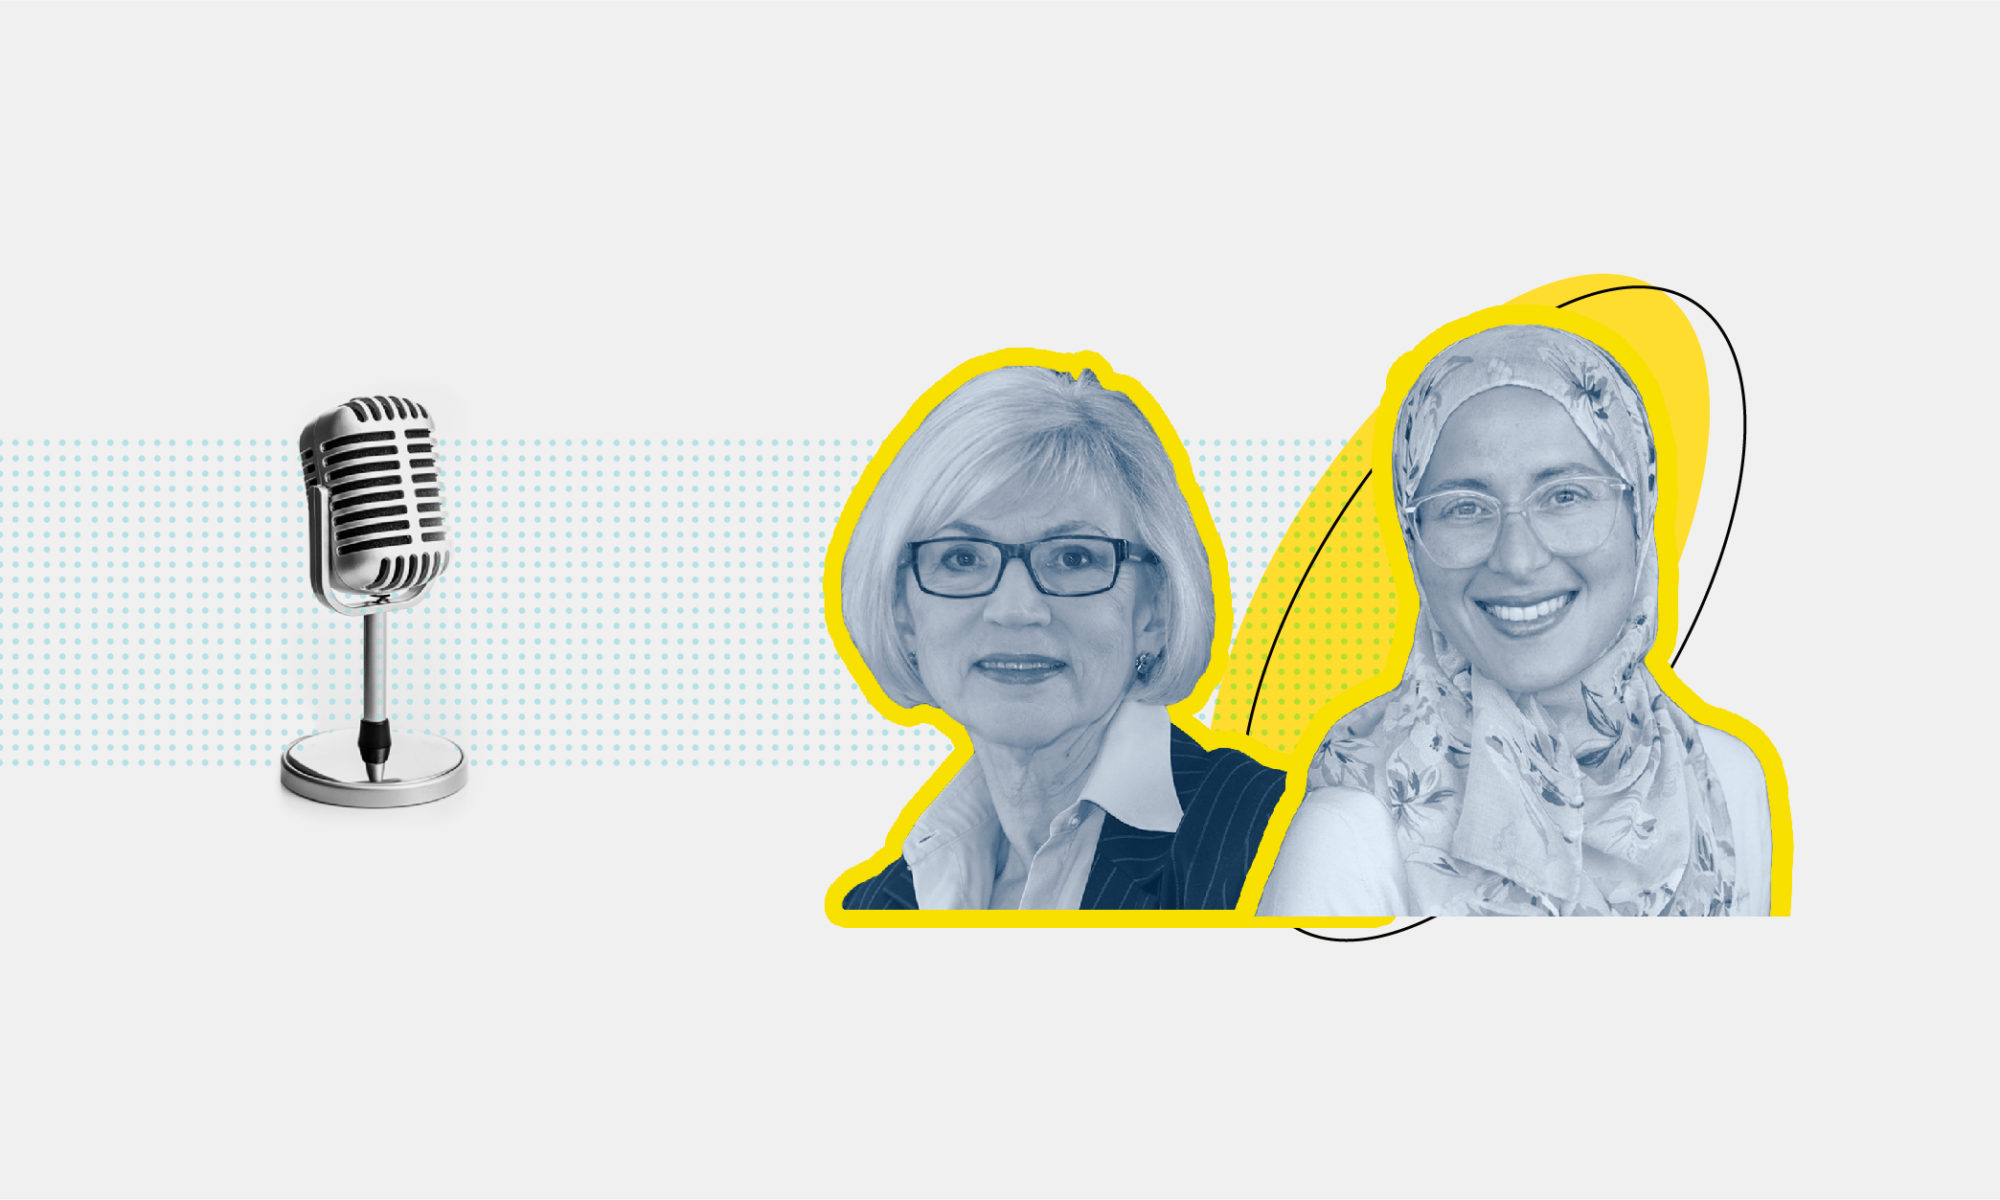 Decorative image with the headshots of Amira Elghawaby and Beverley McLachlin